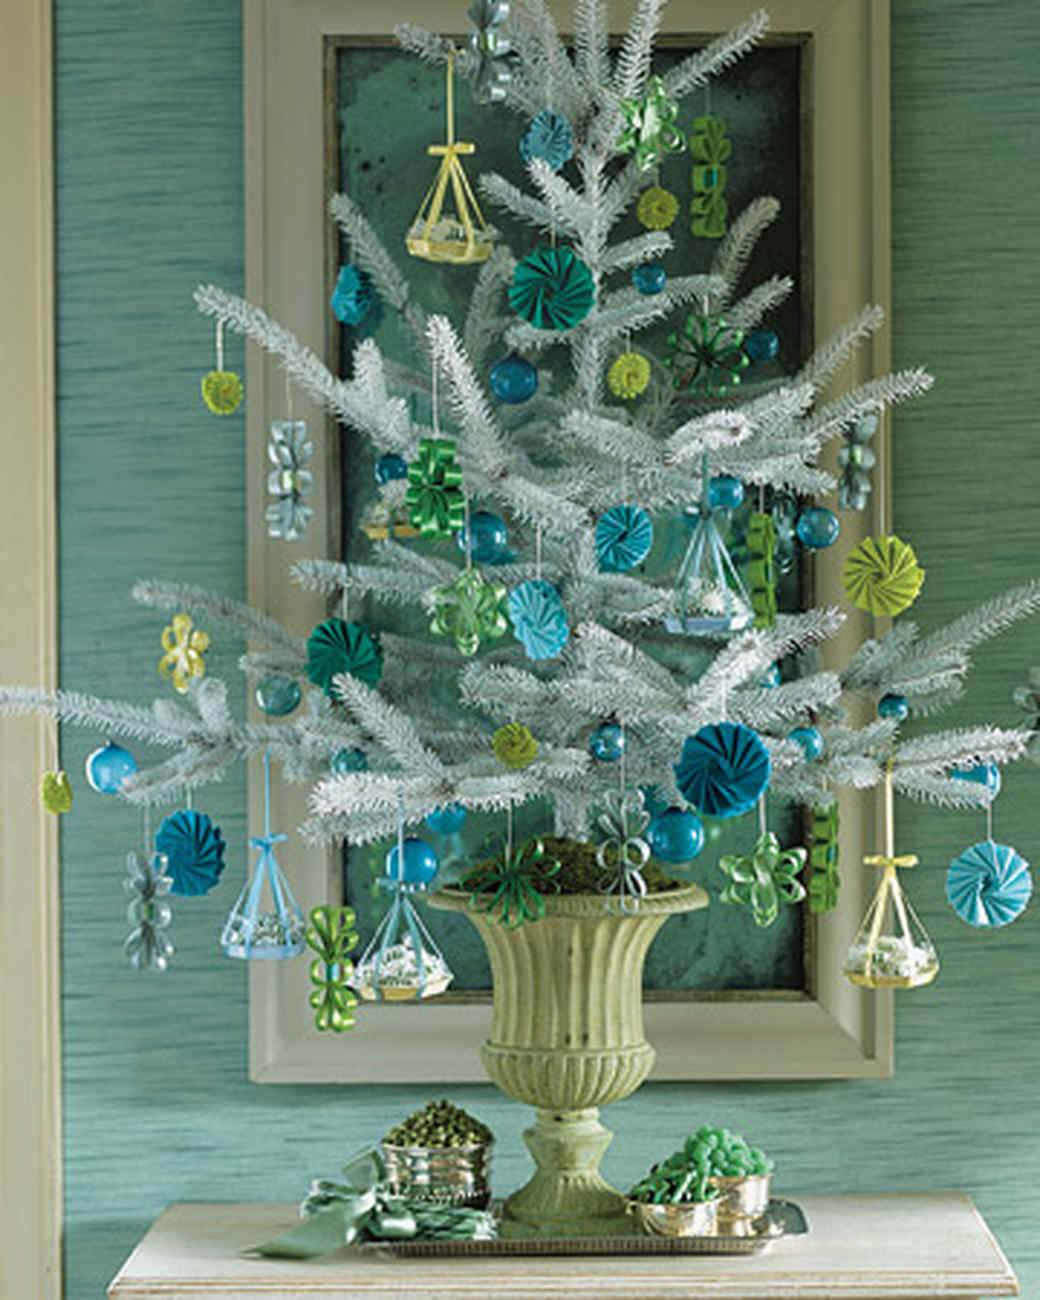 28 creative christmas tree decorating ideas martha stewart - Unique Christmas Decorating Ideas